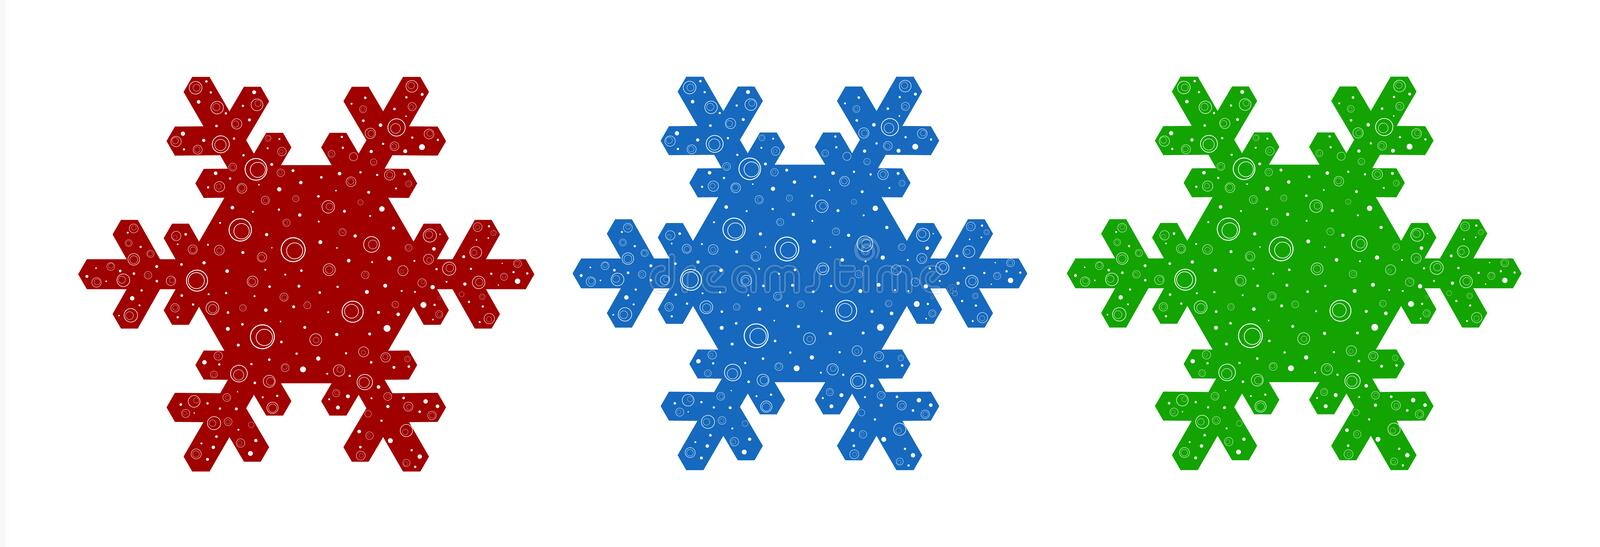 Download Illustrationsnowflake vektor illustrationer. Illustration av säsongsbetonat - 3537070